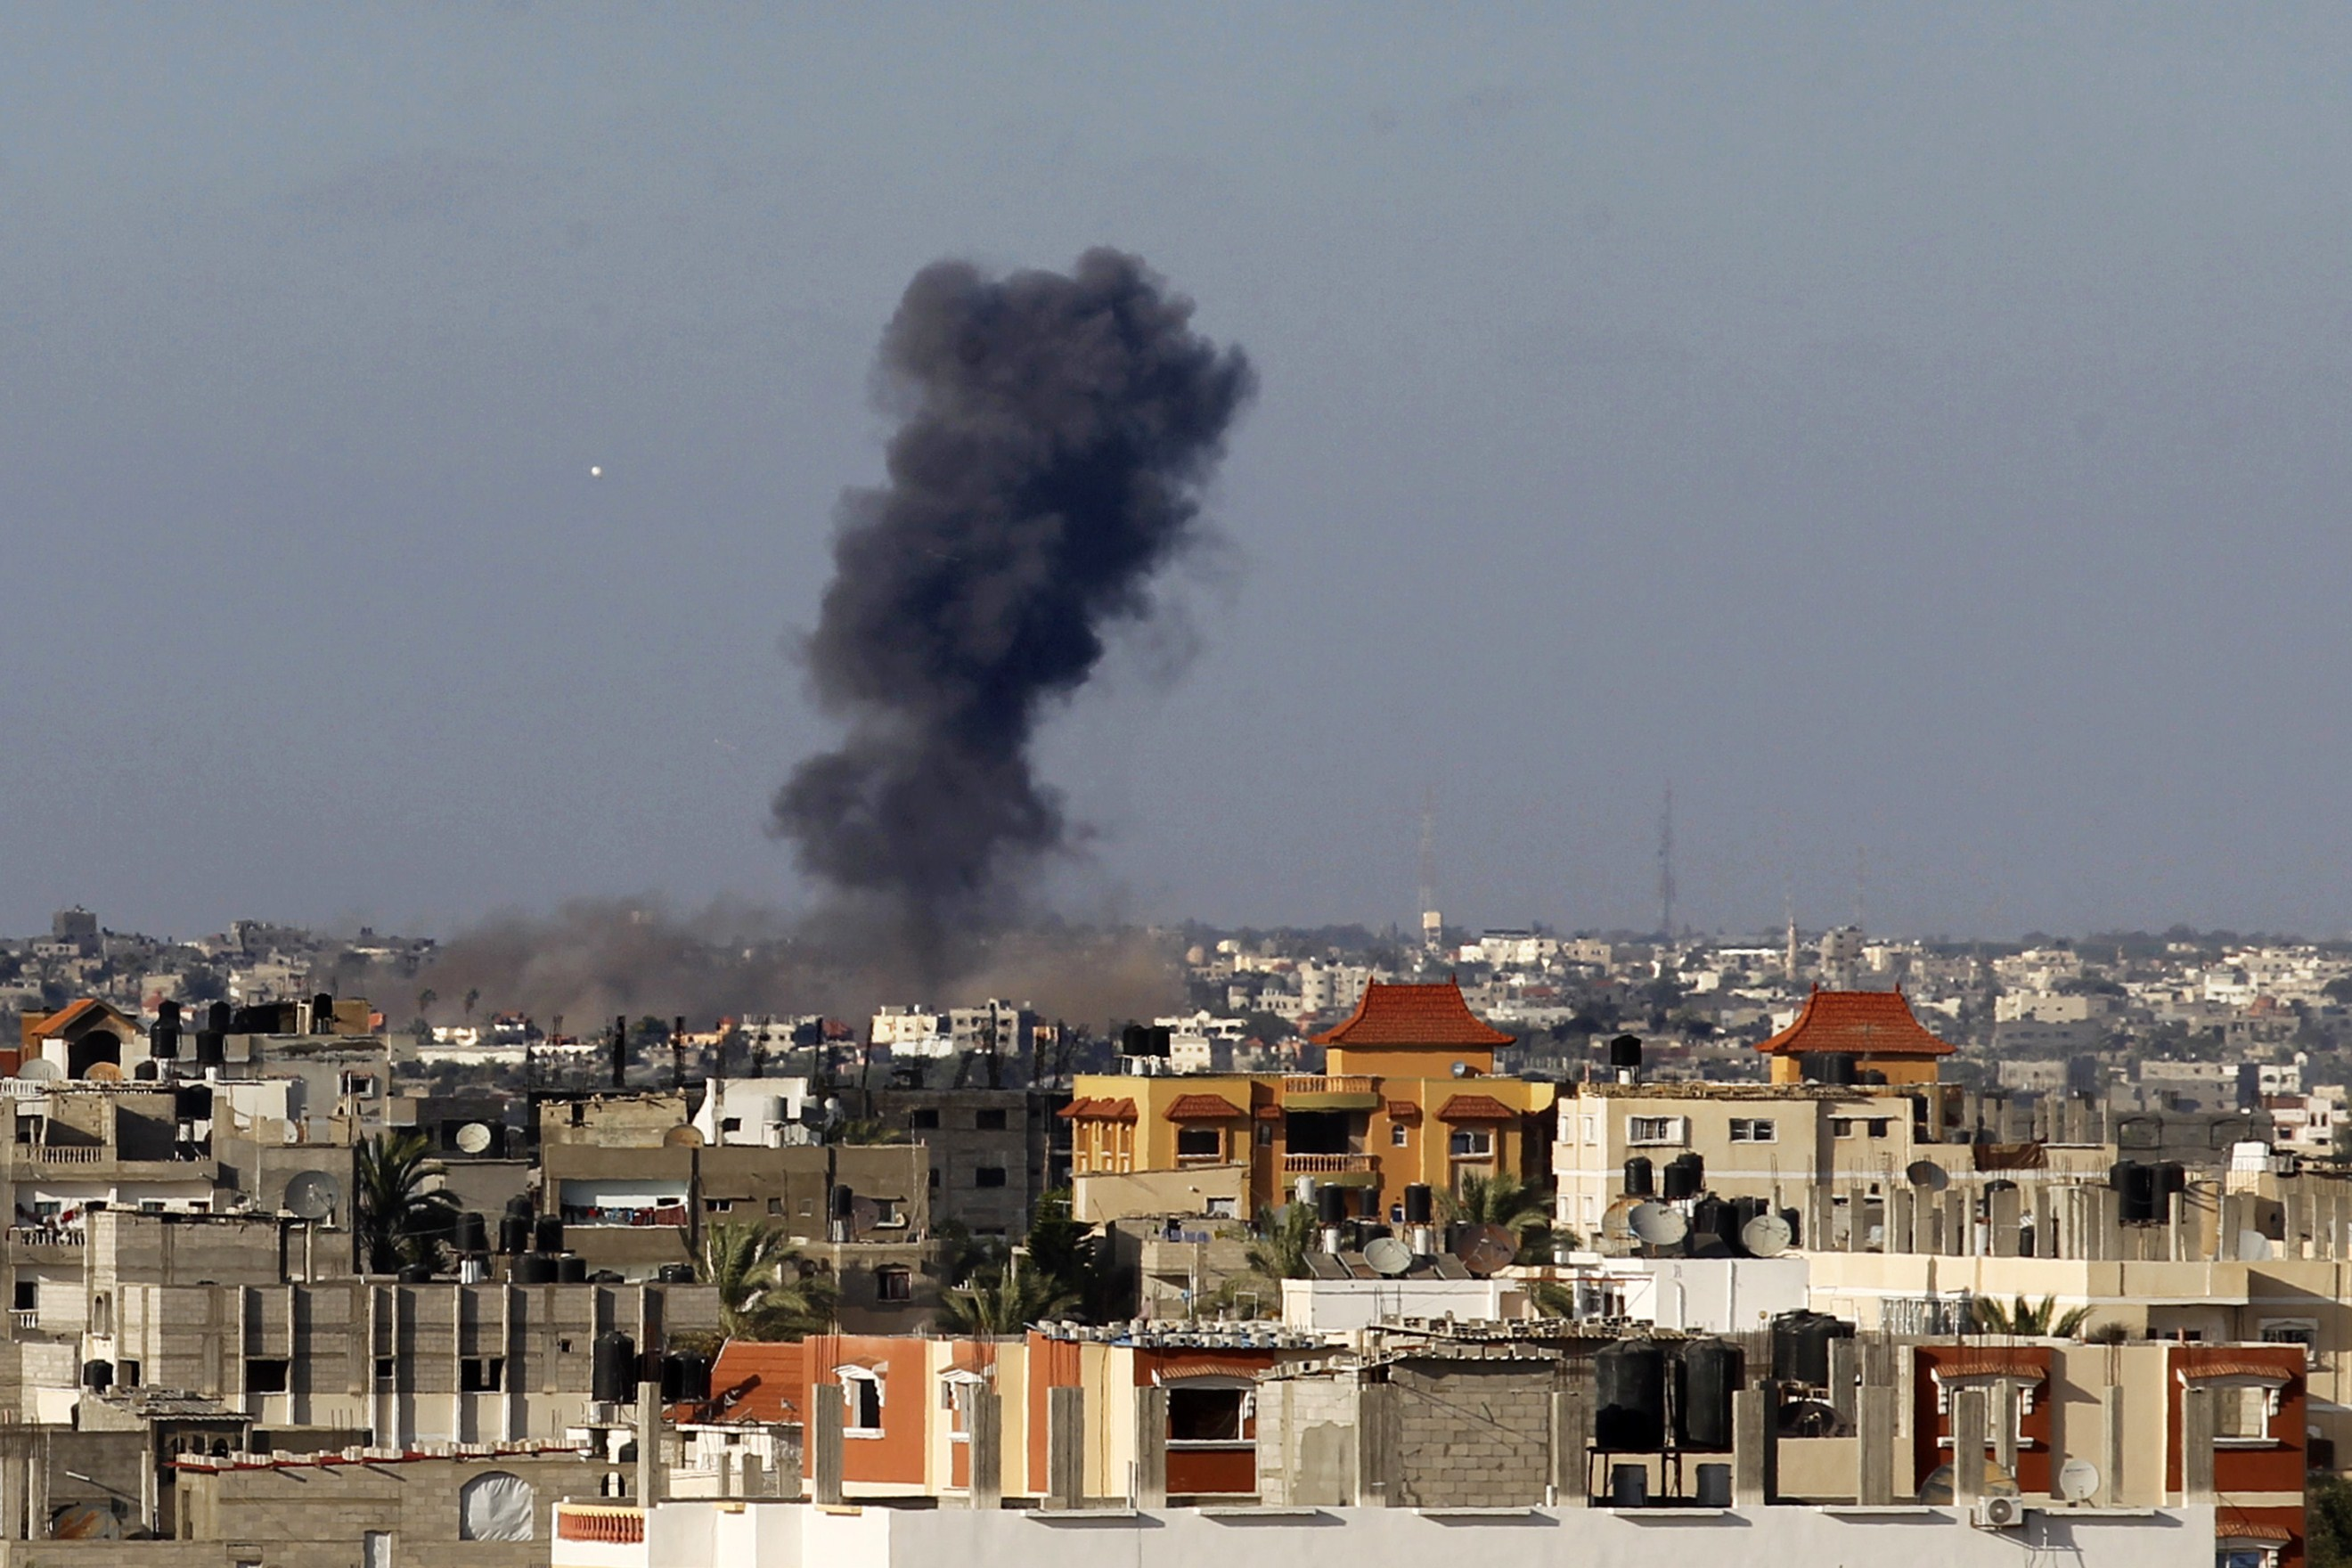 Smoke billows from a building hit by an Israeli air strike in the town of Rafah, in the southern Gaza Strip, on July 13, 2014.